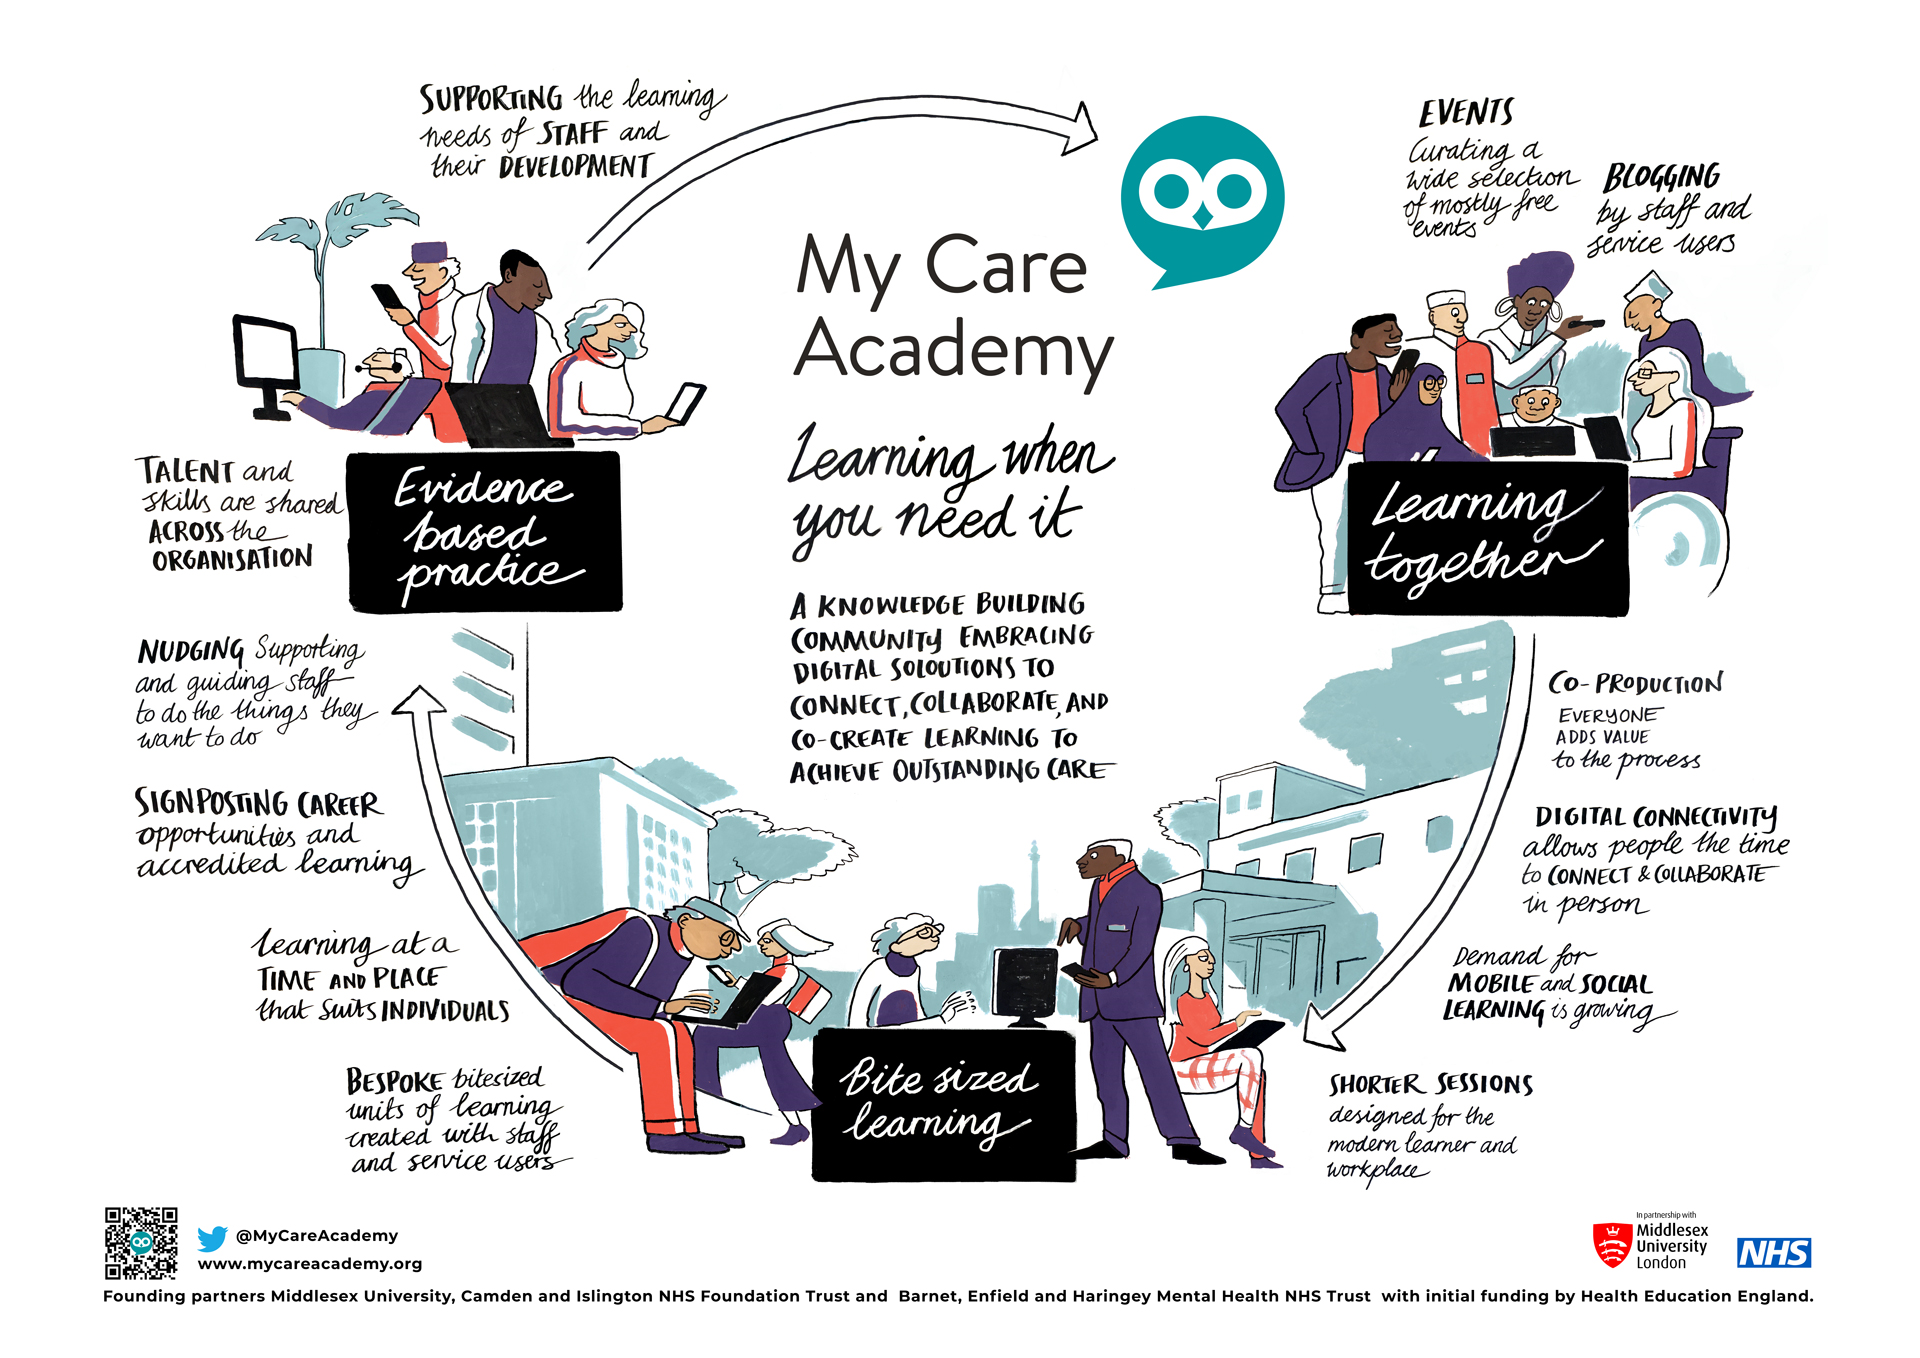 My Care Academy | Learning when you need it.